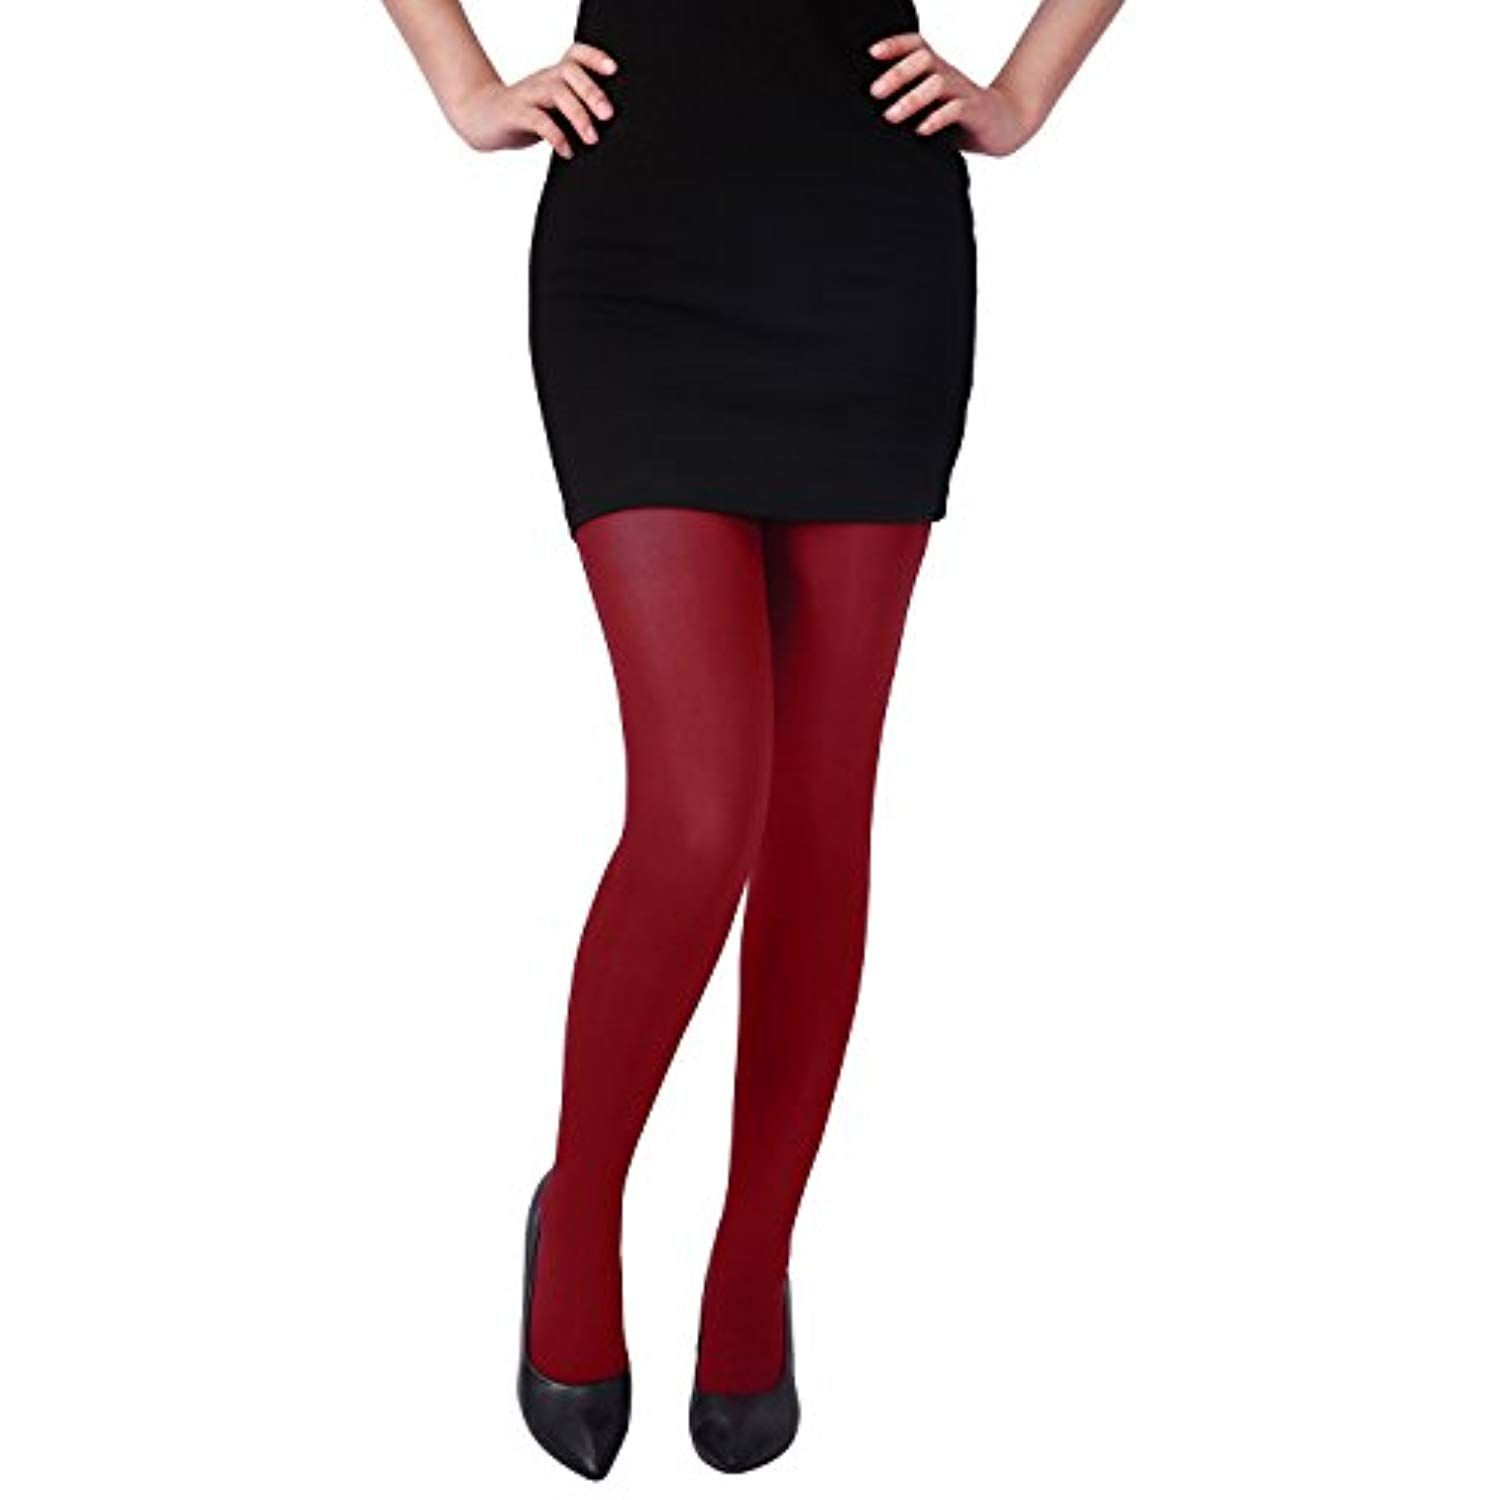 0a7ed333e9af5 Women's Solid Gradient Color Stockings Opaque Microfiber Footed Tights >>>  More info could be found at the image url. (This is an affiliate link)